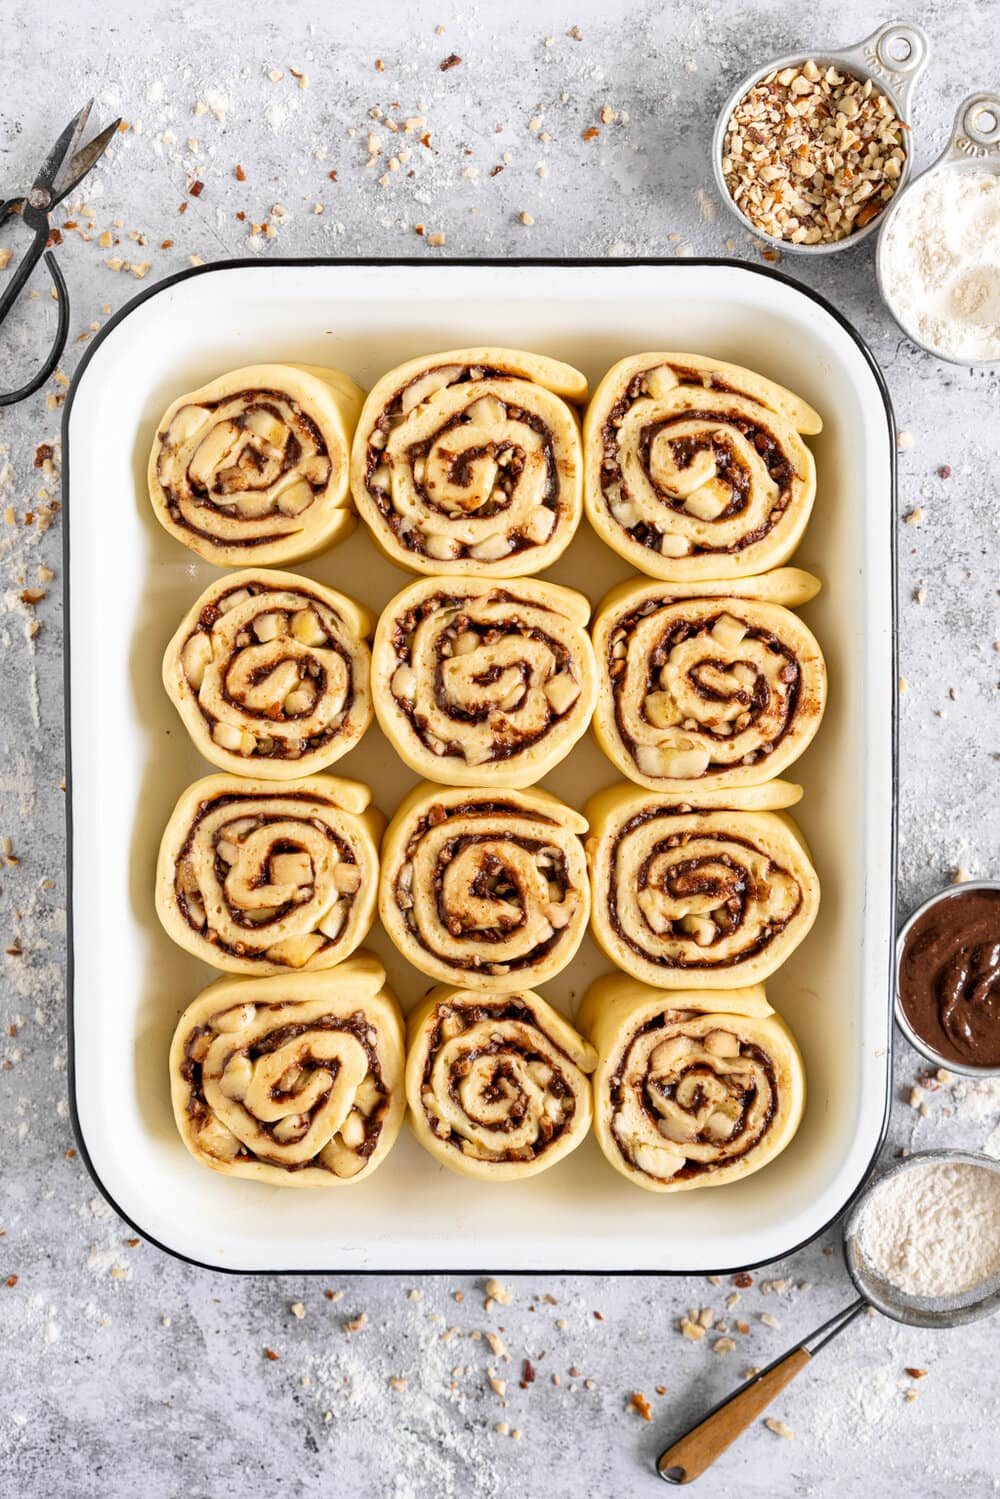 <yoastmark class='yoast-text-mark'>Nutella</yoastmark>, <yoastmark class='yoast-text-mark'>Banana</yoastmark> and Hazelnut Sweet <yoastmark class='yoast-text-mark'>Rolls</yoastmark> with Chocolate Cream Cheese Frosting. Soft, fluffy brioche is covered in <yoastmark class='yoast-text-mark'>nutella</yoastmark> and <yoastmark class='yoast-text-mark'>bananas</yoastmark>, and sprinkled with hazelnuts, then rolled up into perfect sweet <yoastmark class='yoast-text-mark'>rolls</yoastmark> and finished with a creamy and smooth chocolate cream cheese frosting. These are a great way to use up any extra bananas that you have around!